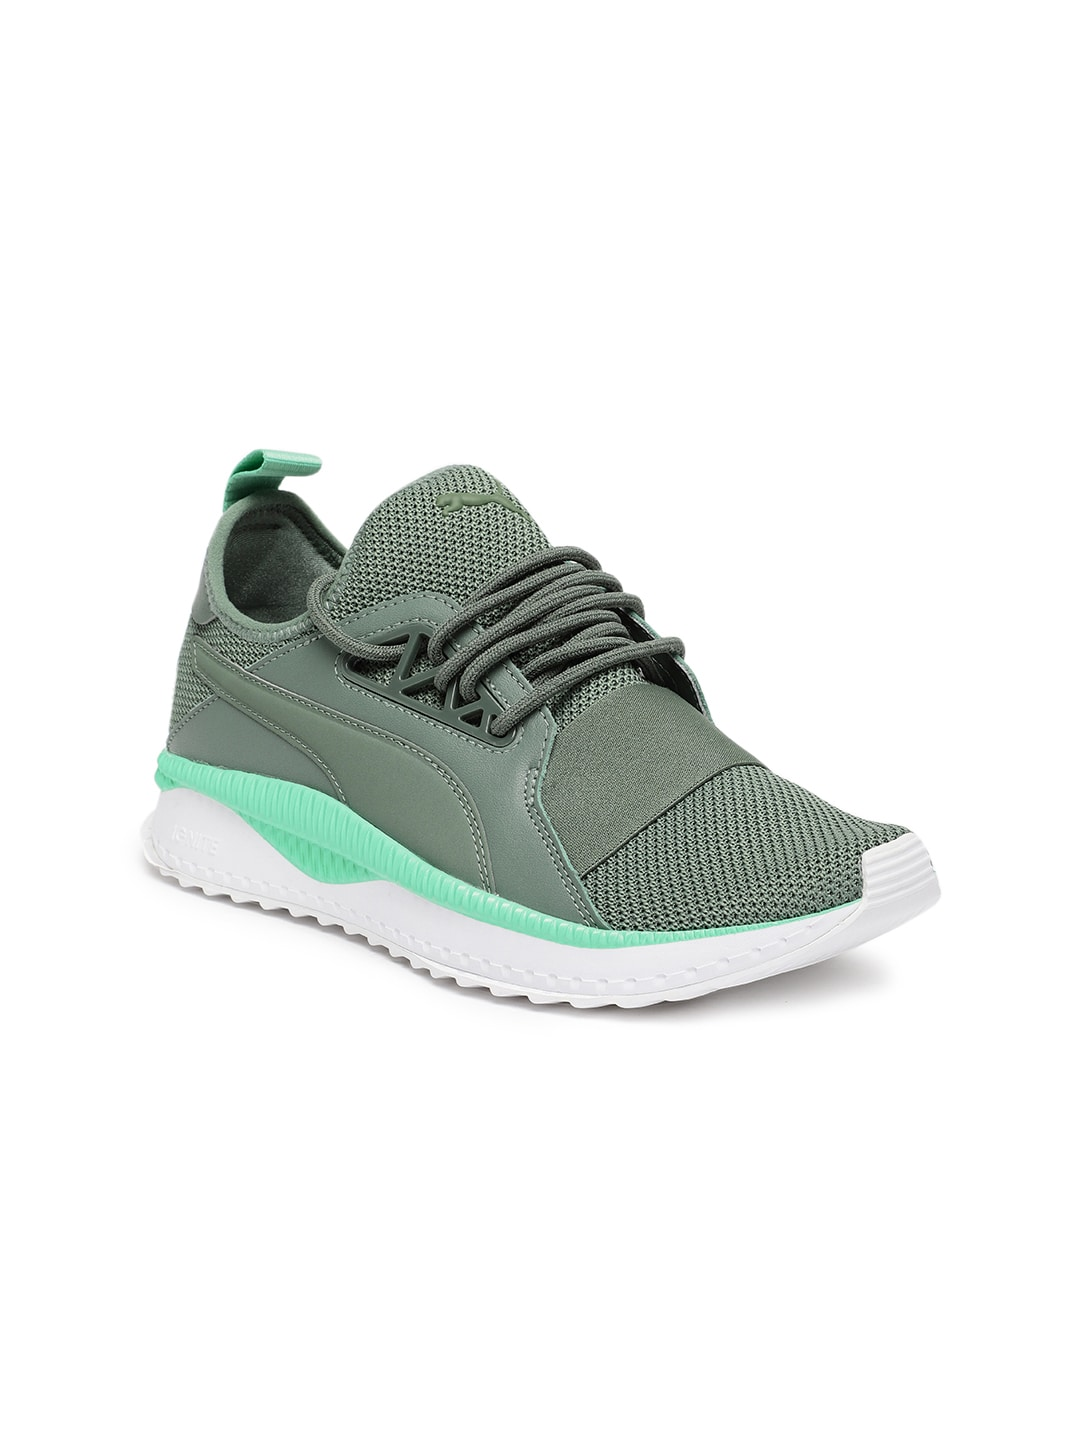 f3866a1a456 Puma Shoes Women Casuals - Buy Puma Shoes Women Casuals online in India